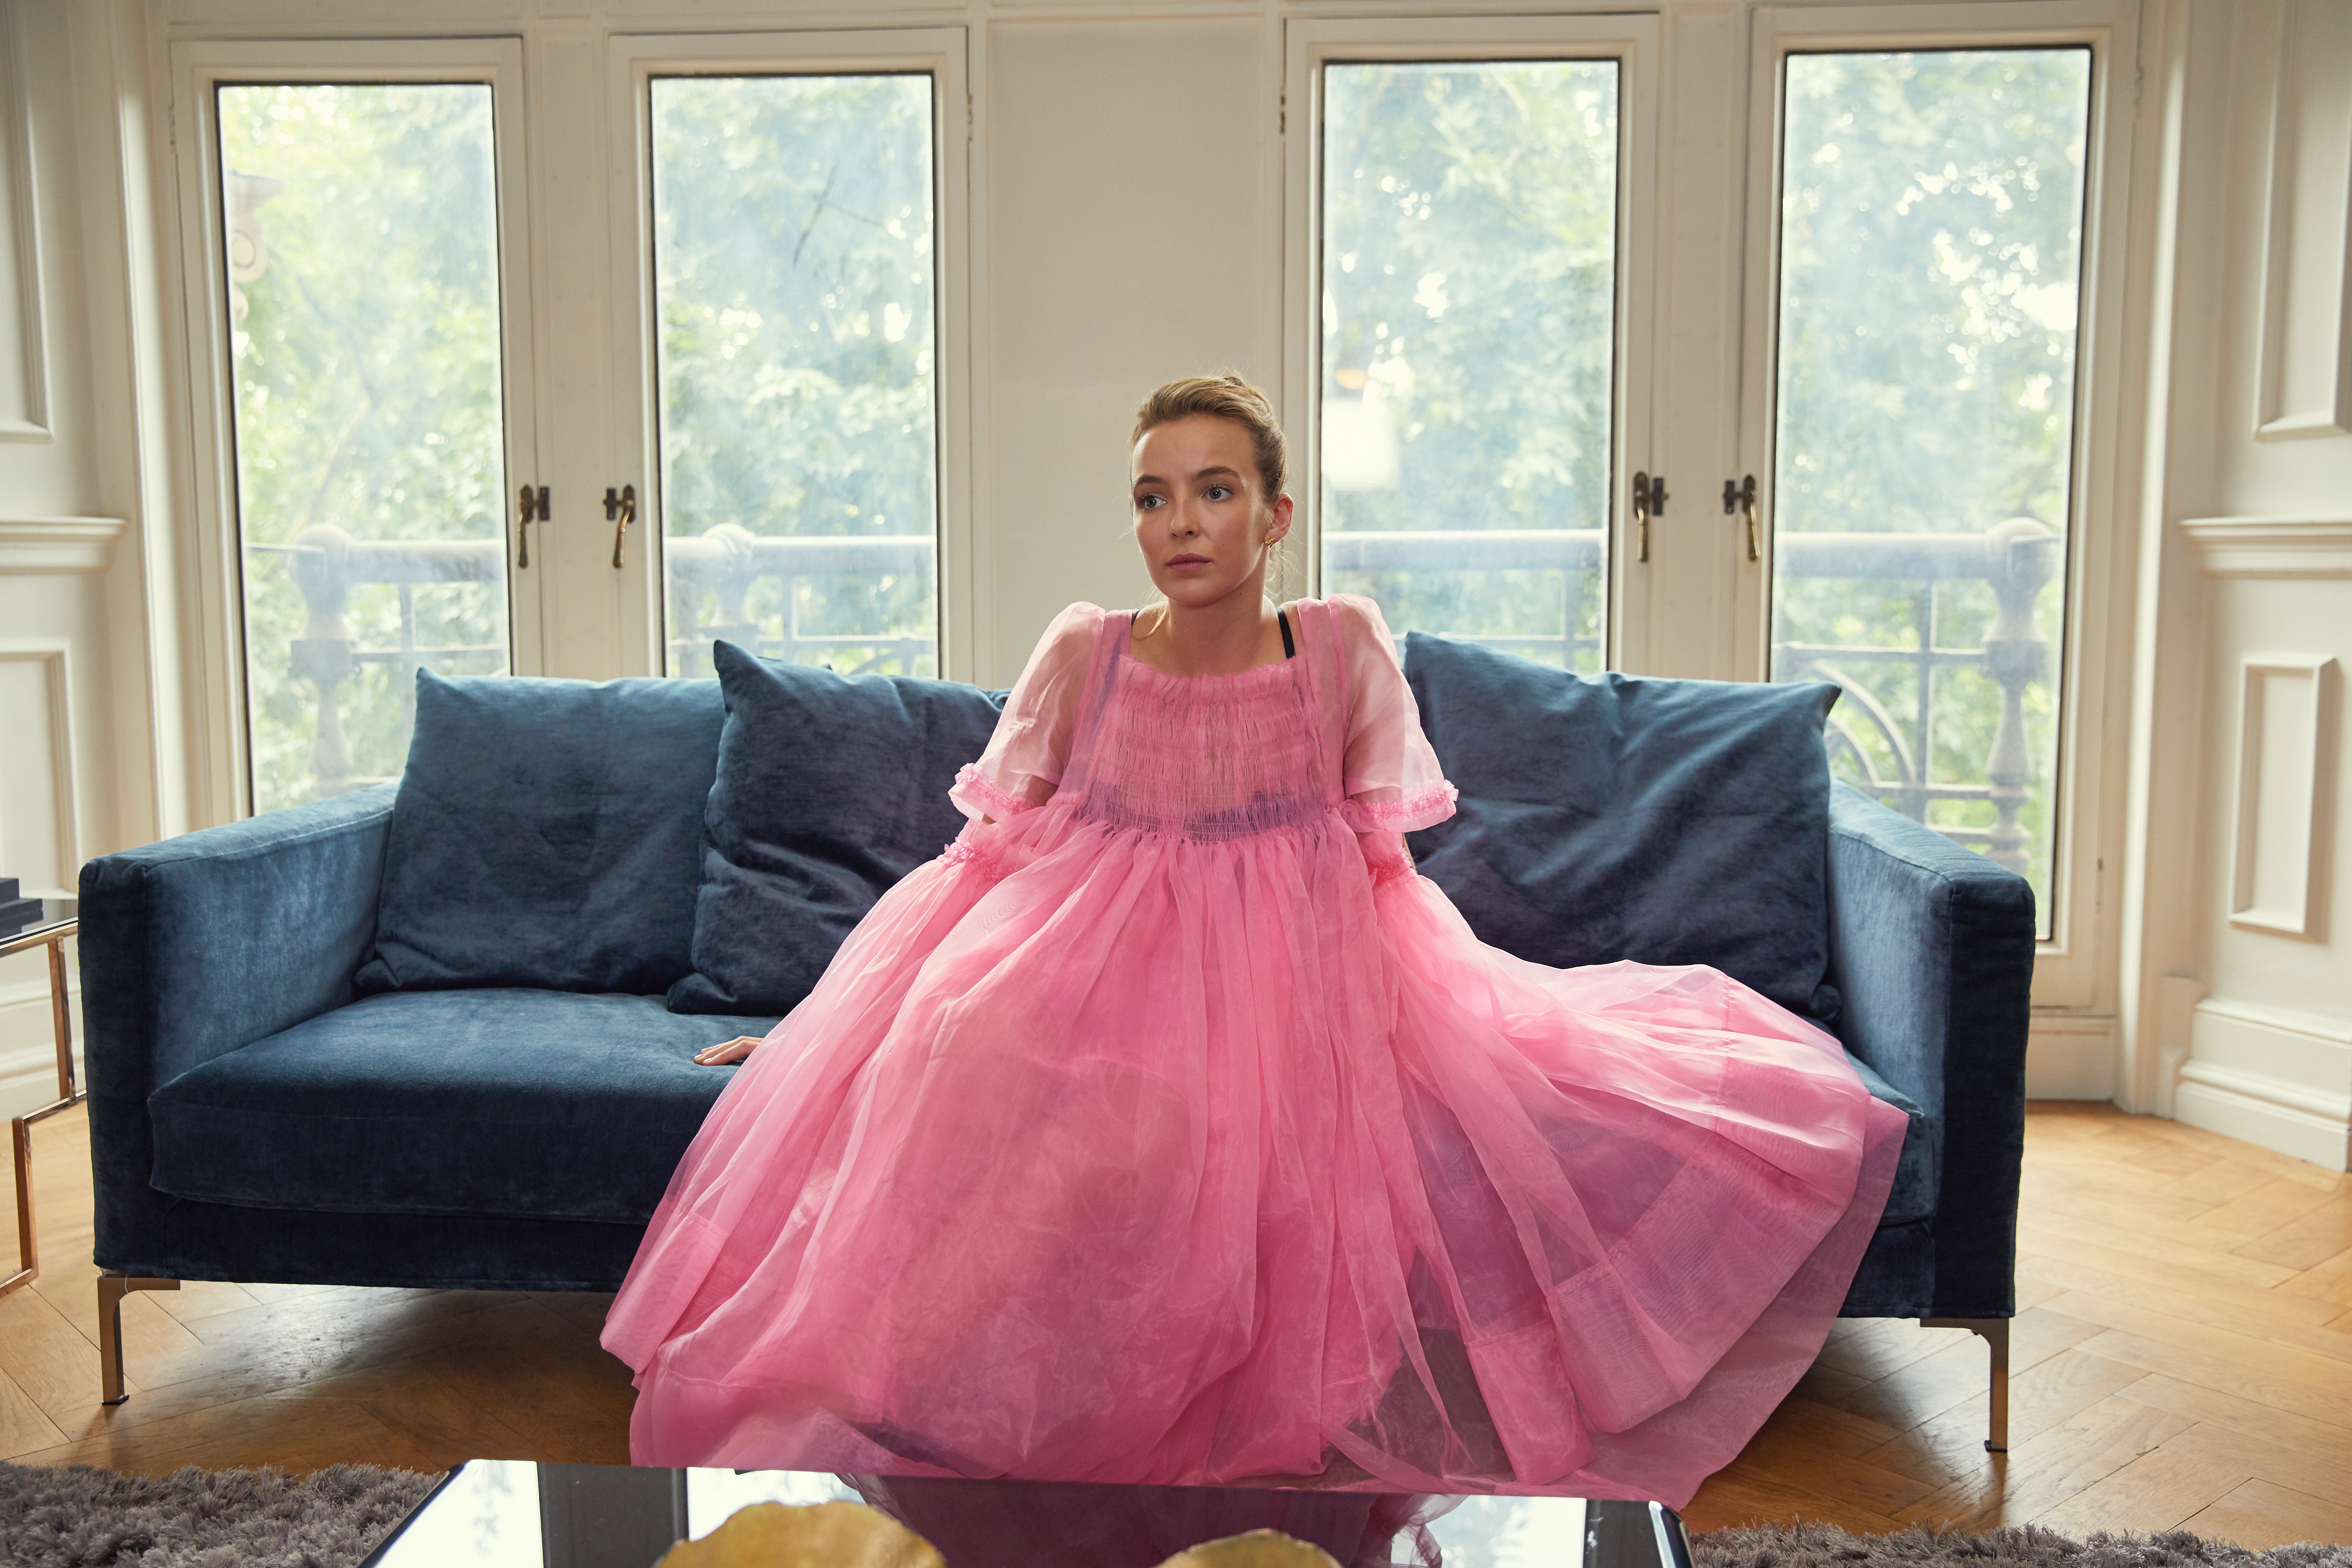 Killing Eve\': How Jodie Comer Turned a Pink-Dressed Psychopath Into ...